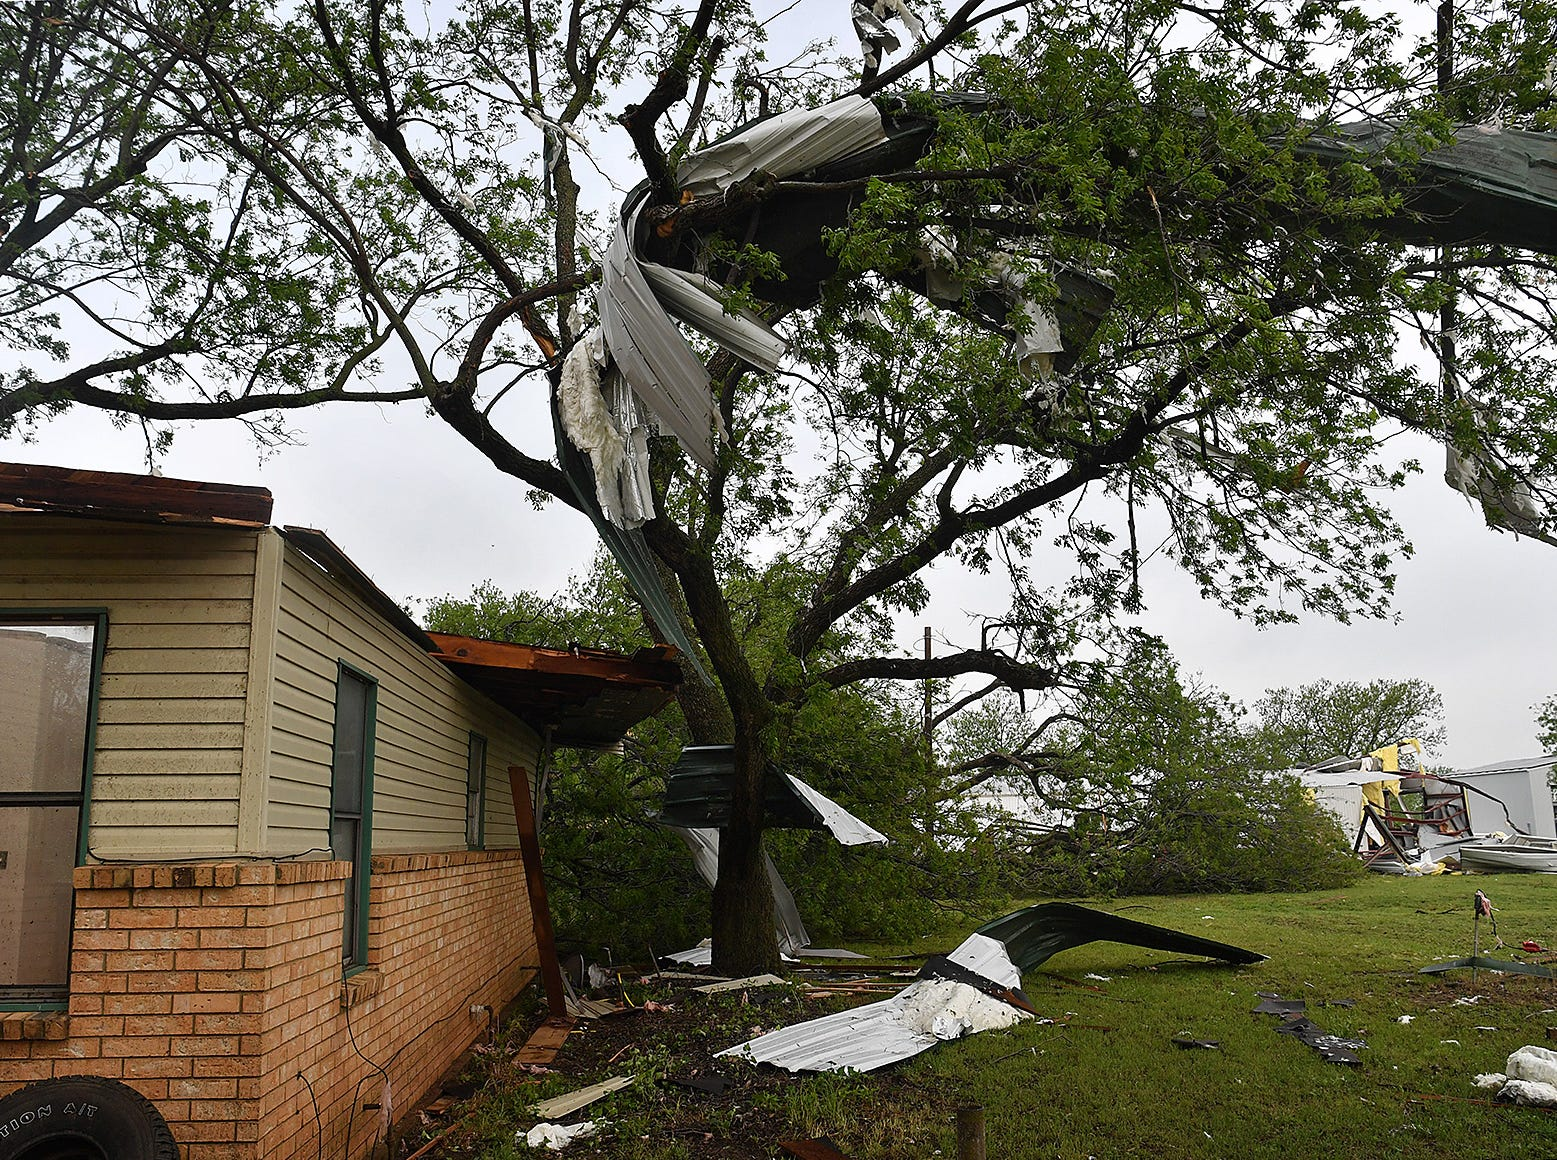 Part of the roof of a home is lodged in a tree at Jetton Farms in Charlie following a tornado Tuesday evening.